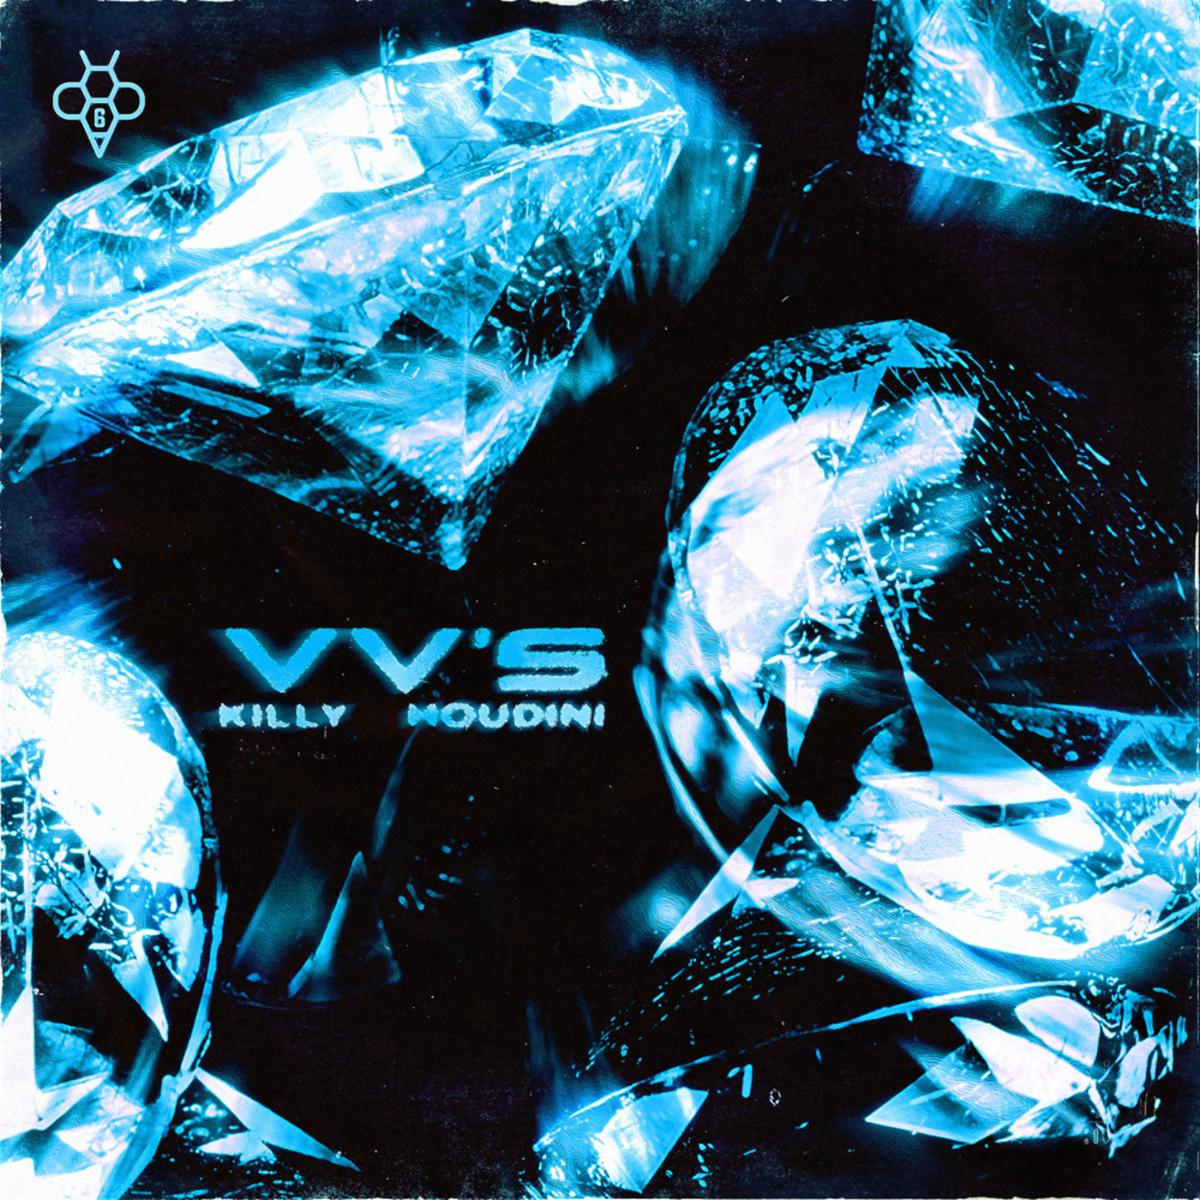 KILLY & Houdini – VV's